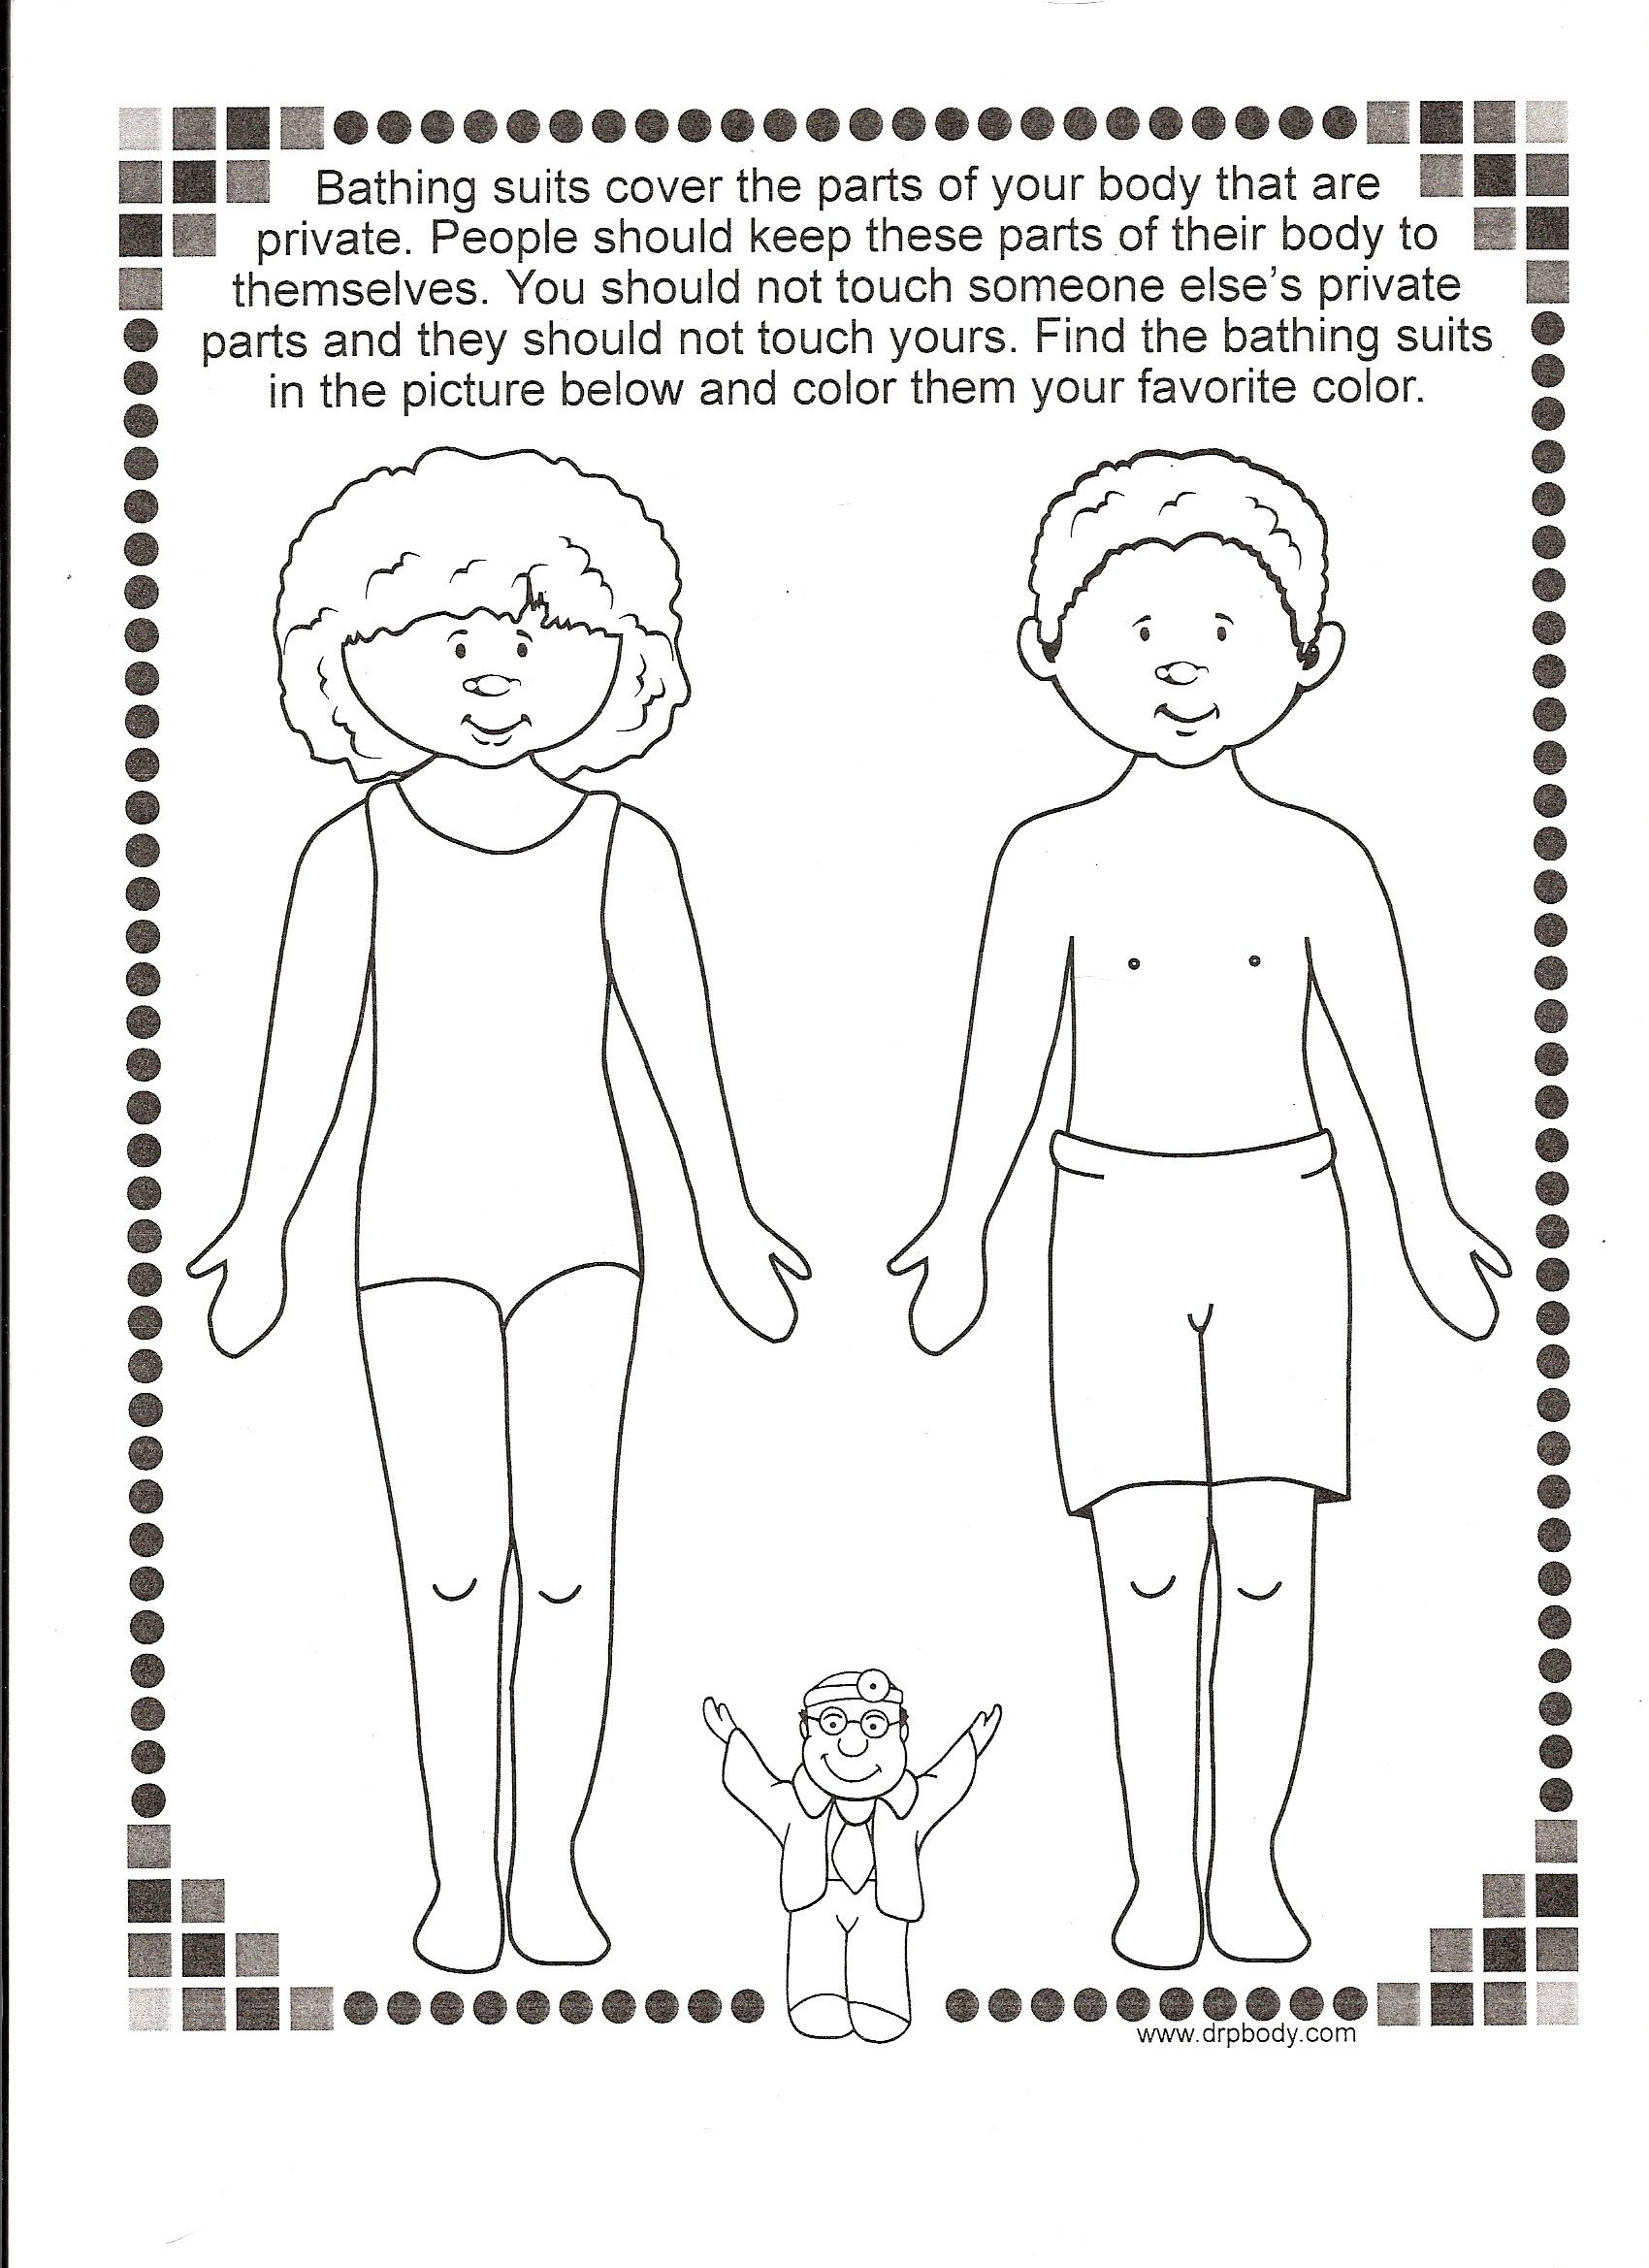 worksheet Therapeutic Worksheets body worksheet colouring pages therapeutic interventions pages